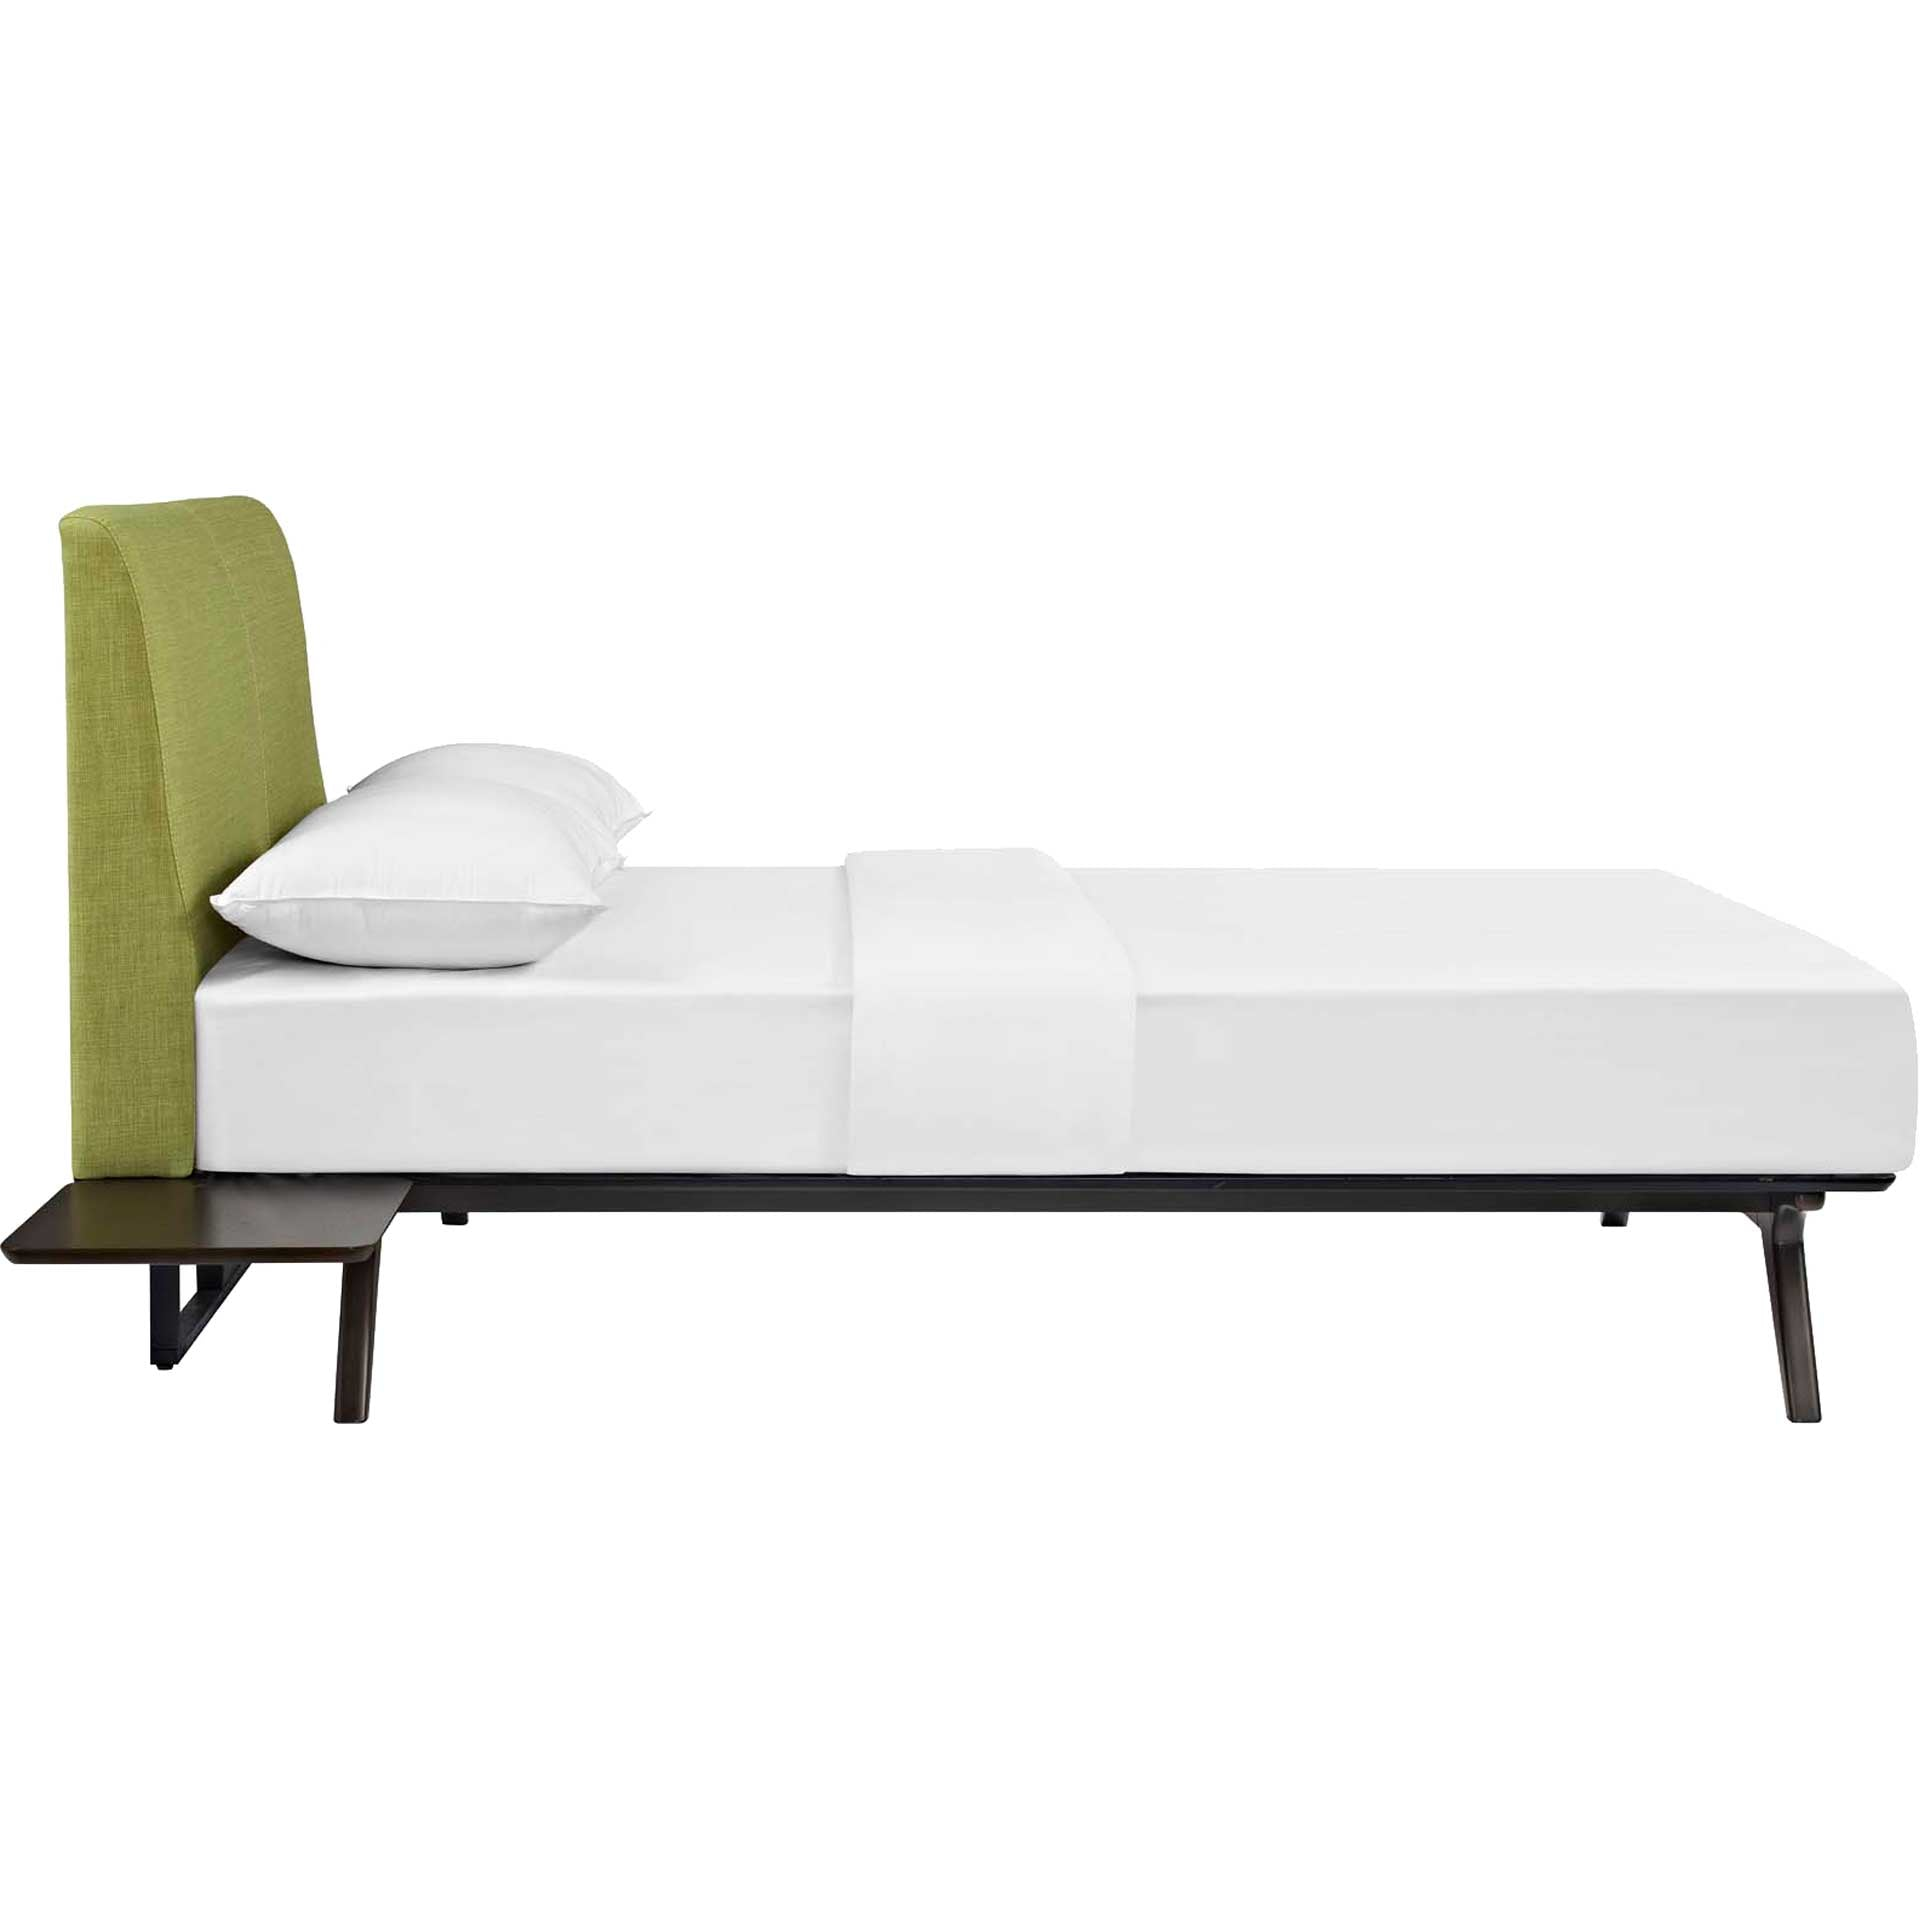 Thames Bed Cappuccino/Green With Side Tables